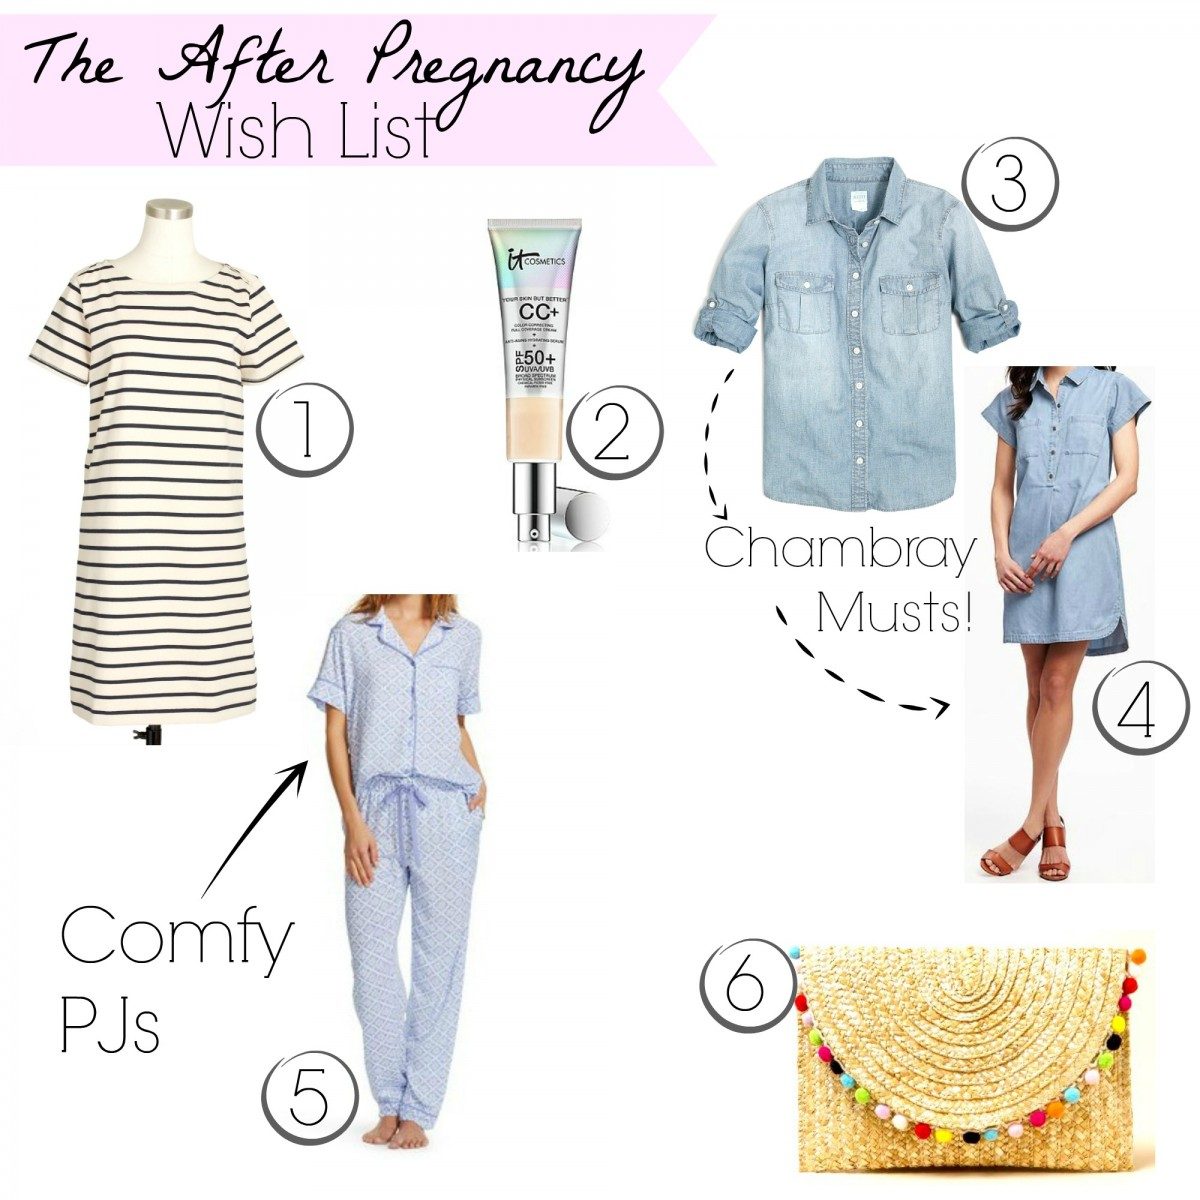 With pregnancy wrapping up, here are some items to purchase AFTER you have the baby!